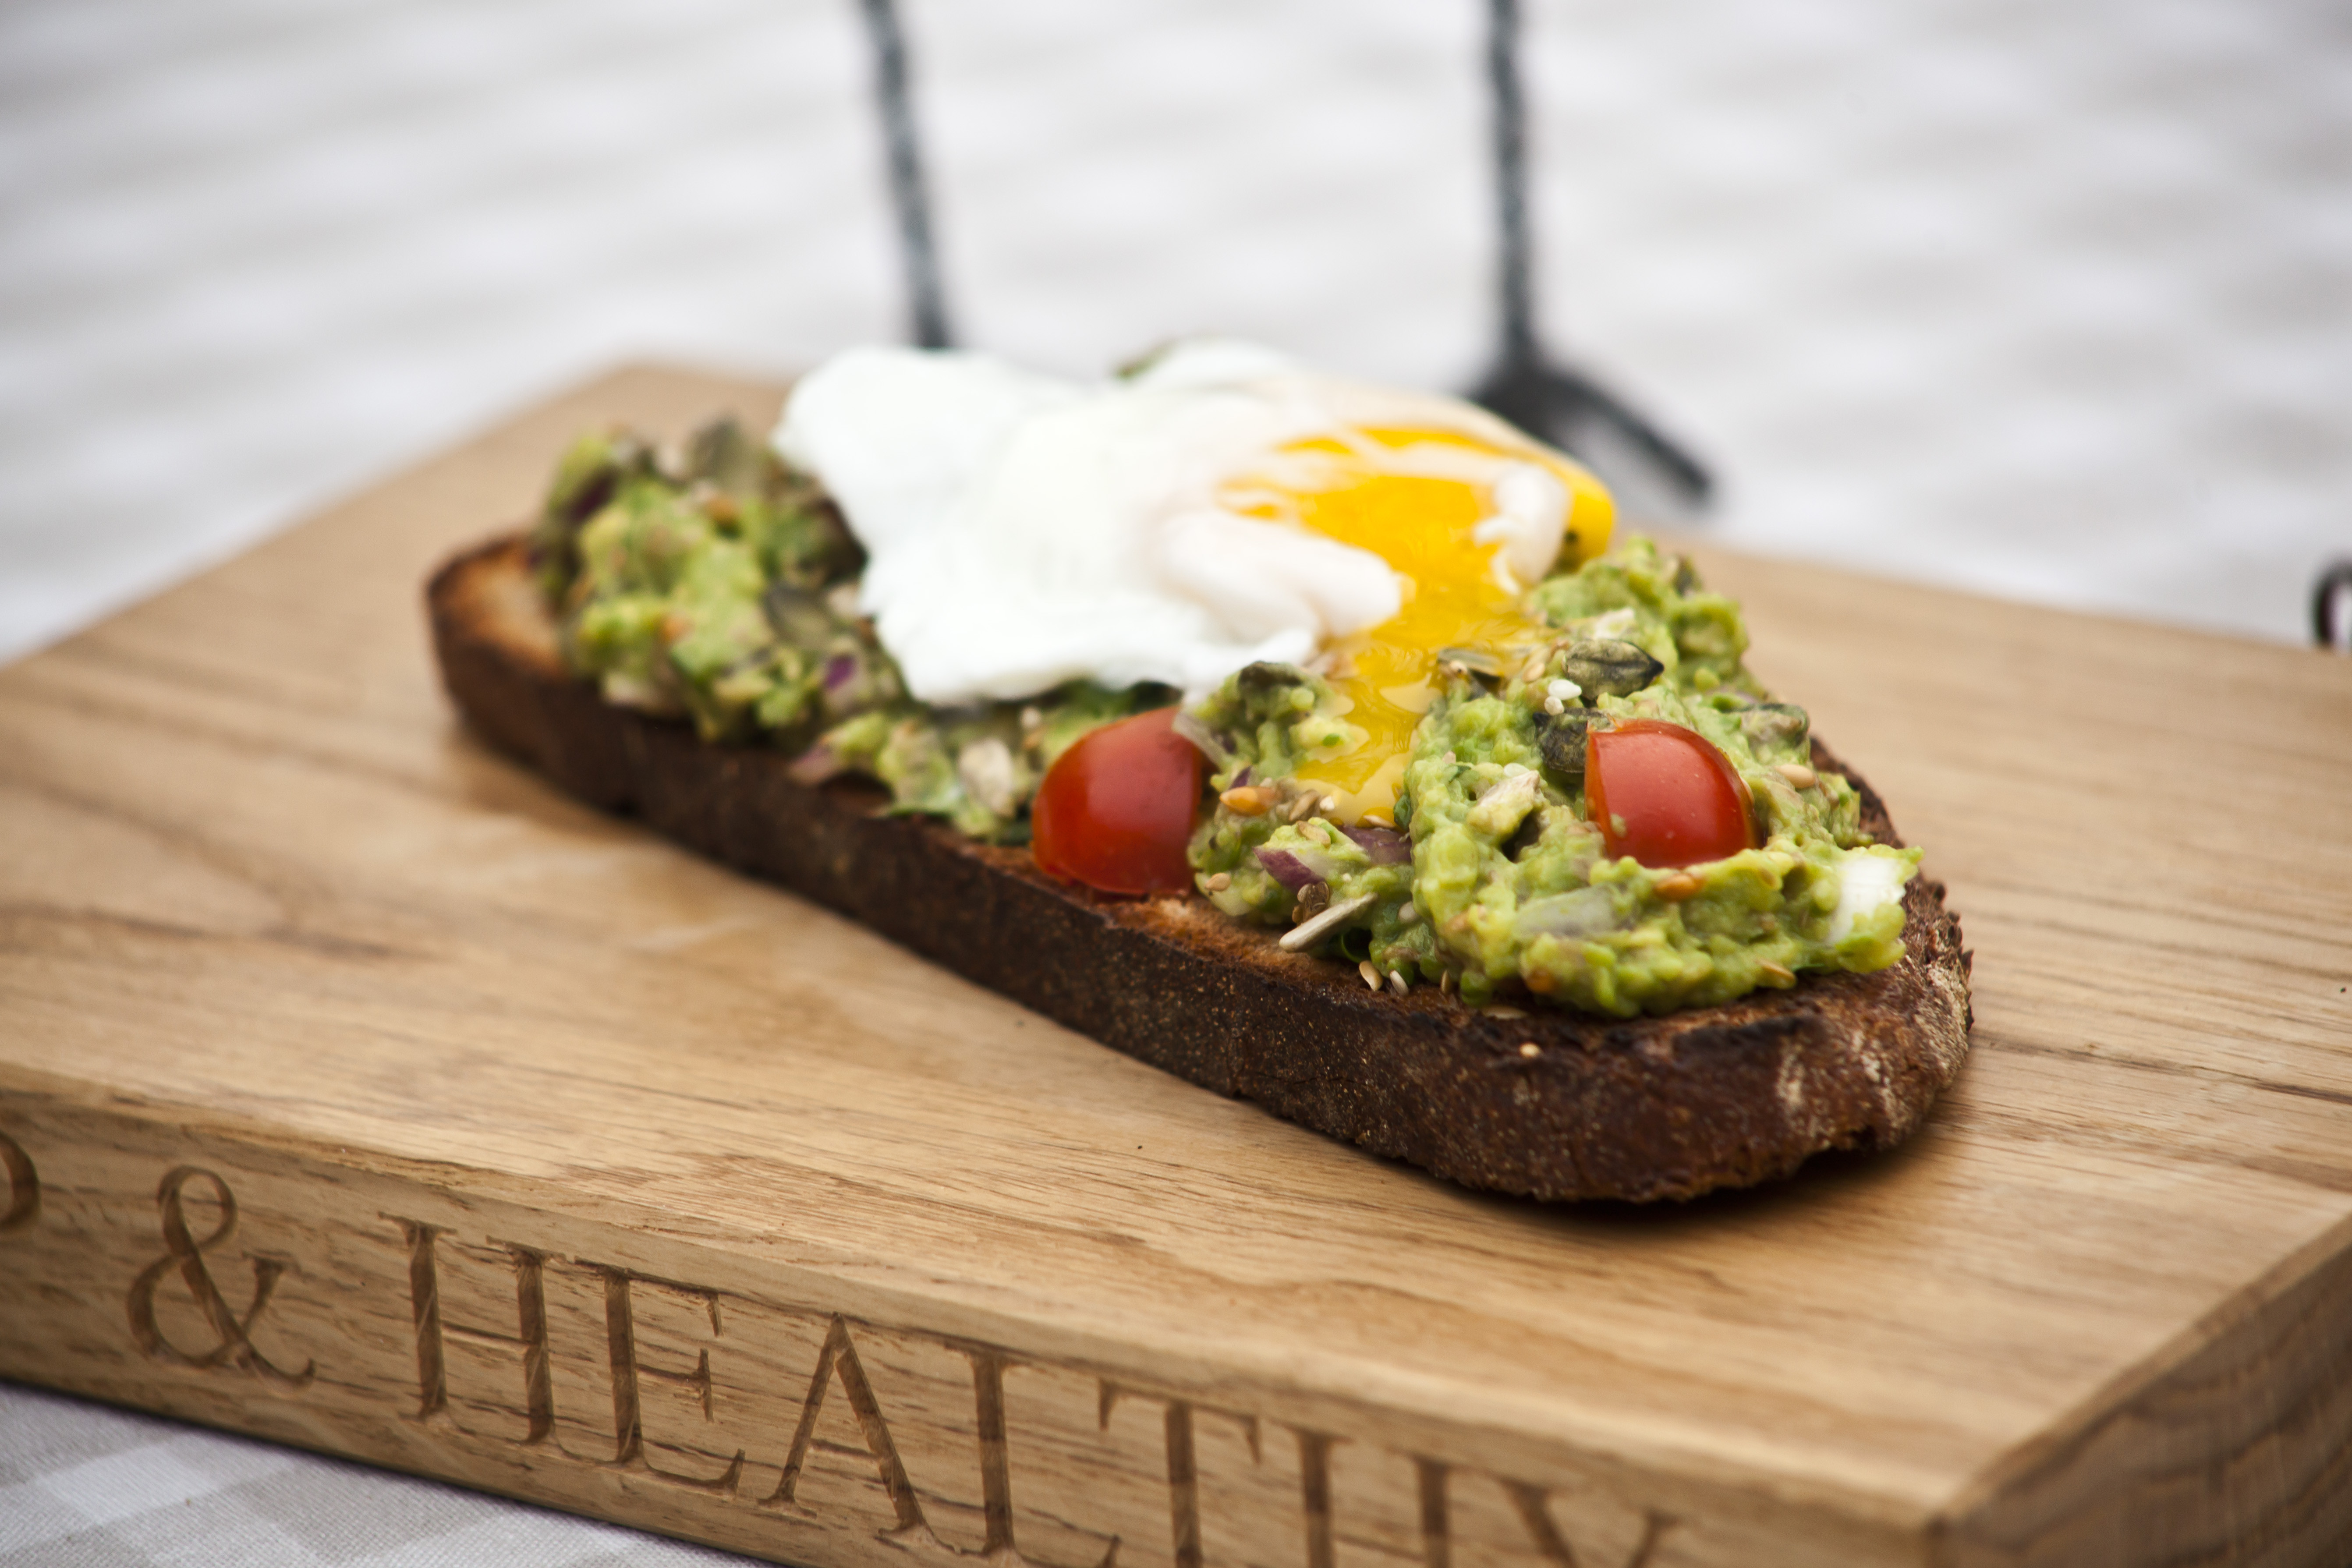 Healthy Avocado Breakfast  Healthy Breakfast Recipe Eggs and Avocado on Toast Hip